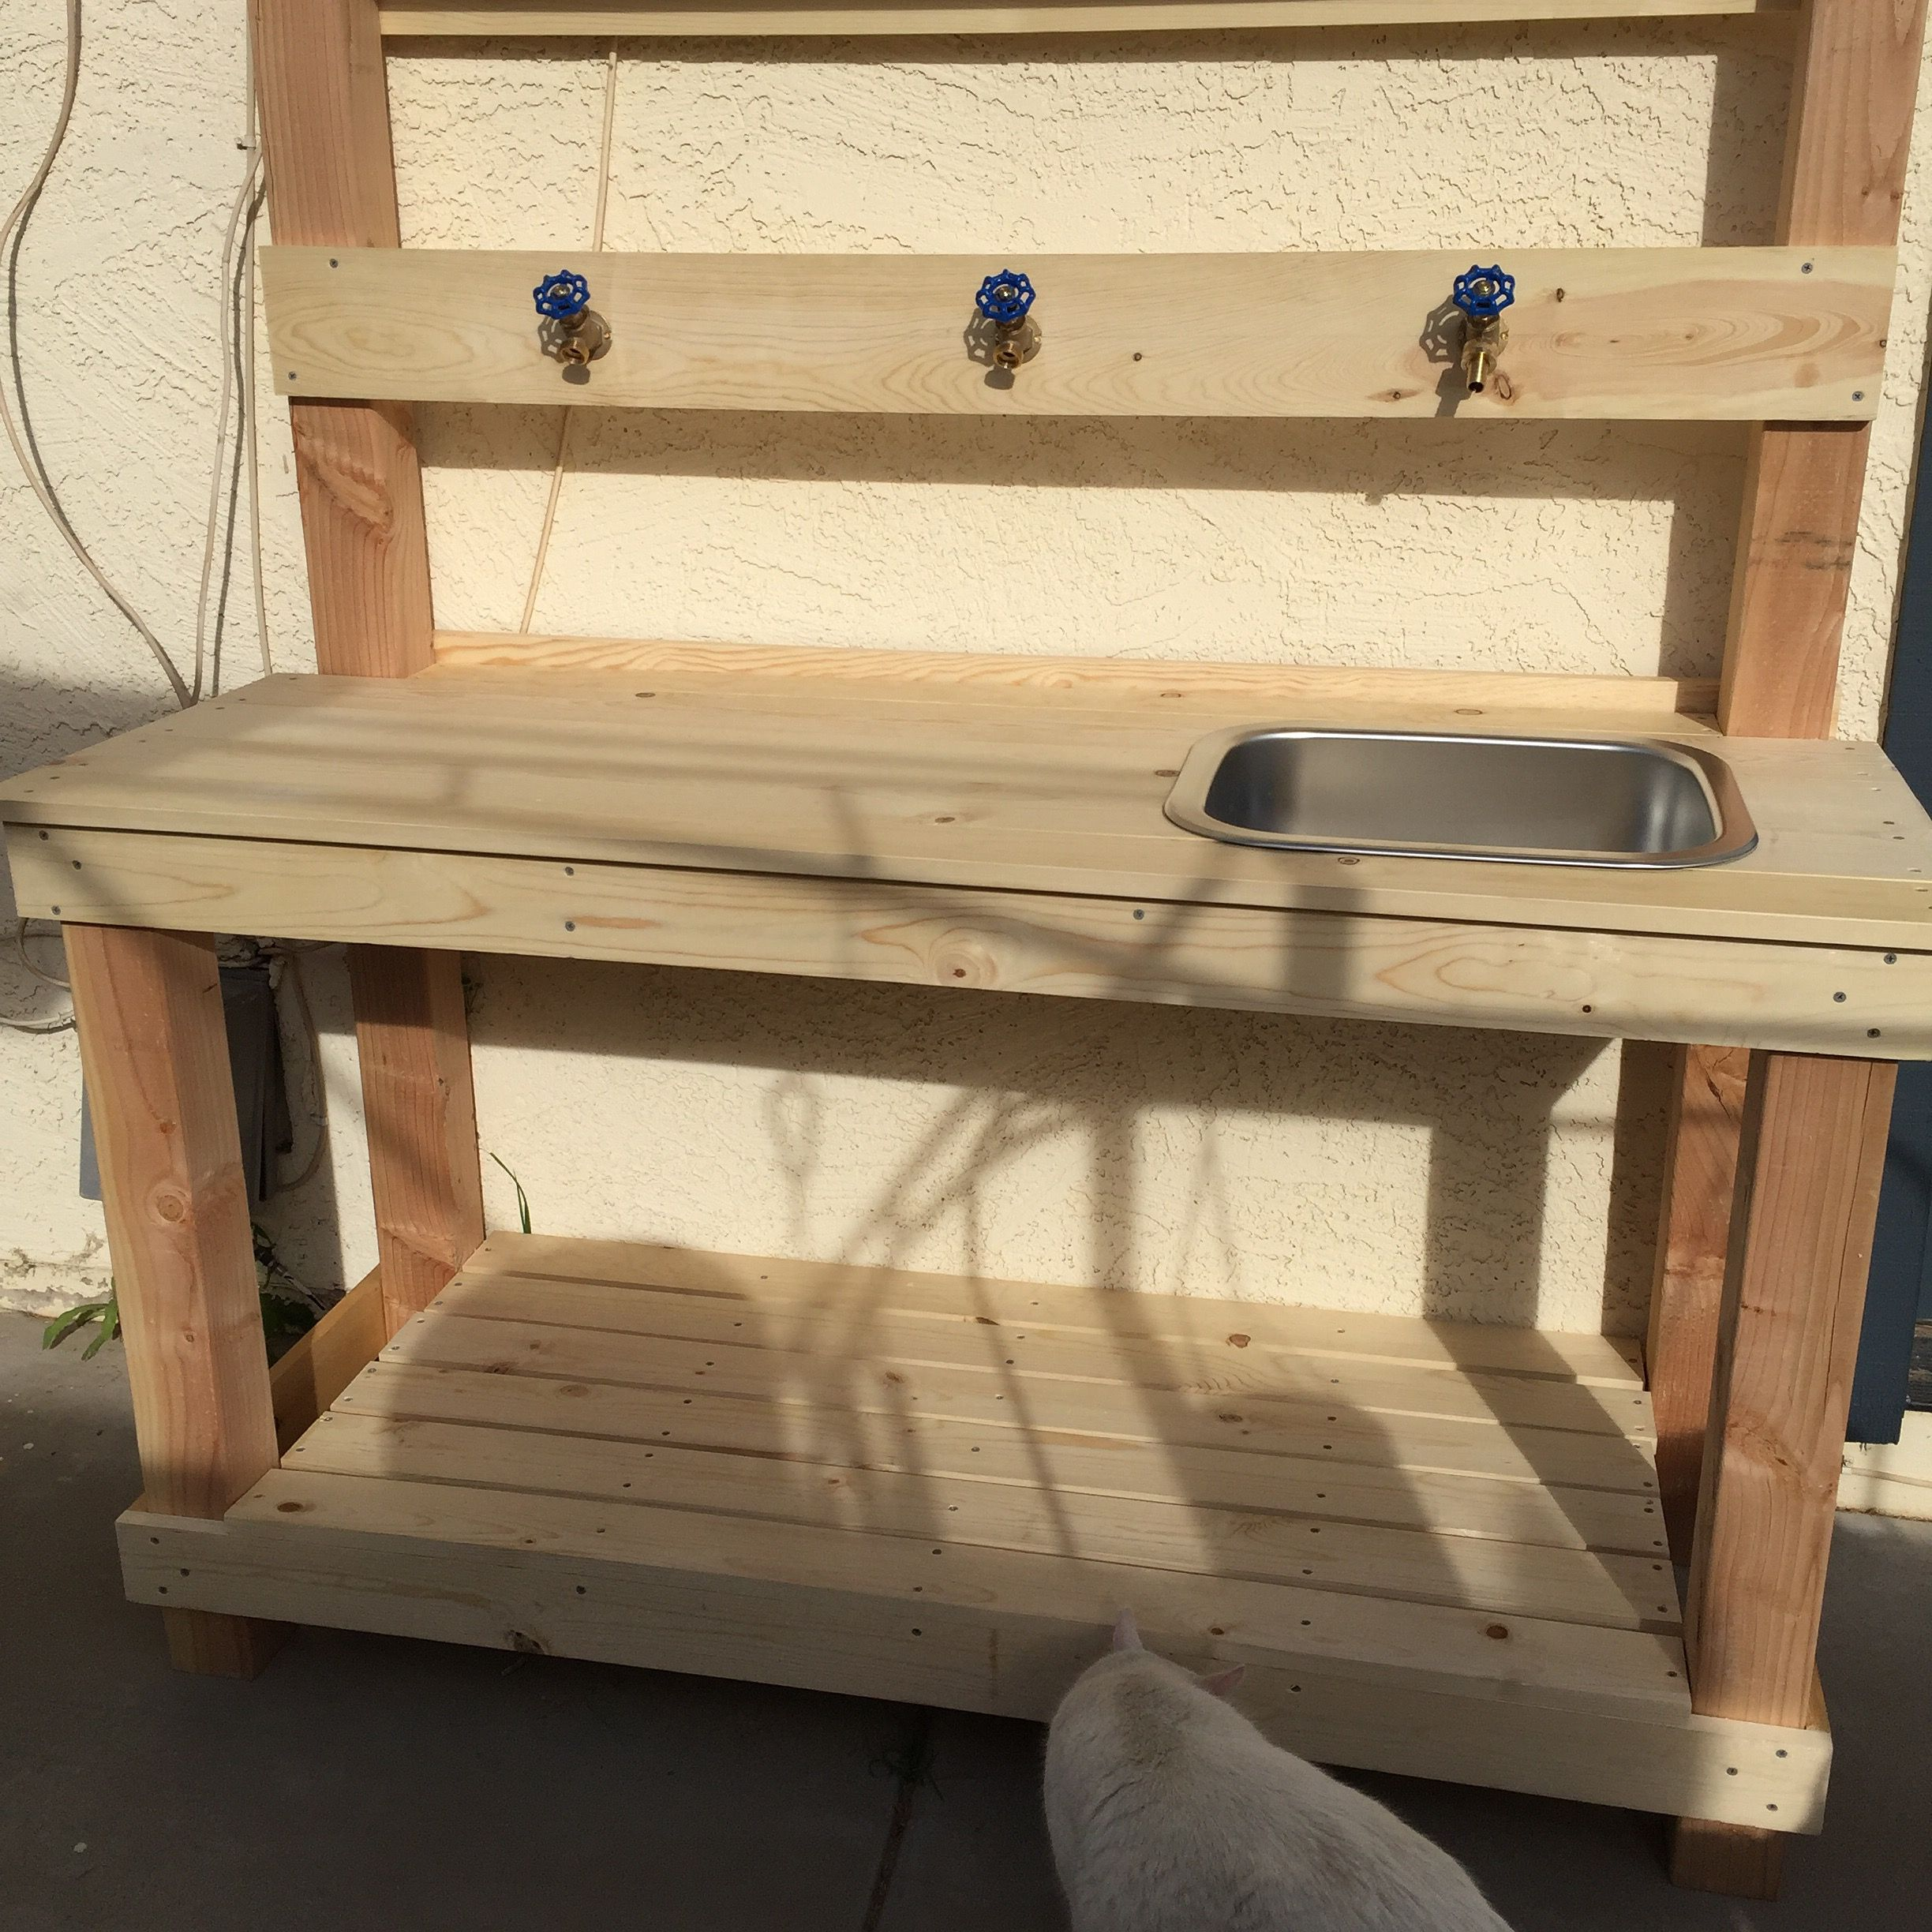 Potting Bench/Wash Bench made with 8x8, 8x8 and 8x8, an Ikea sink